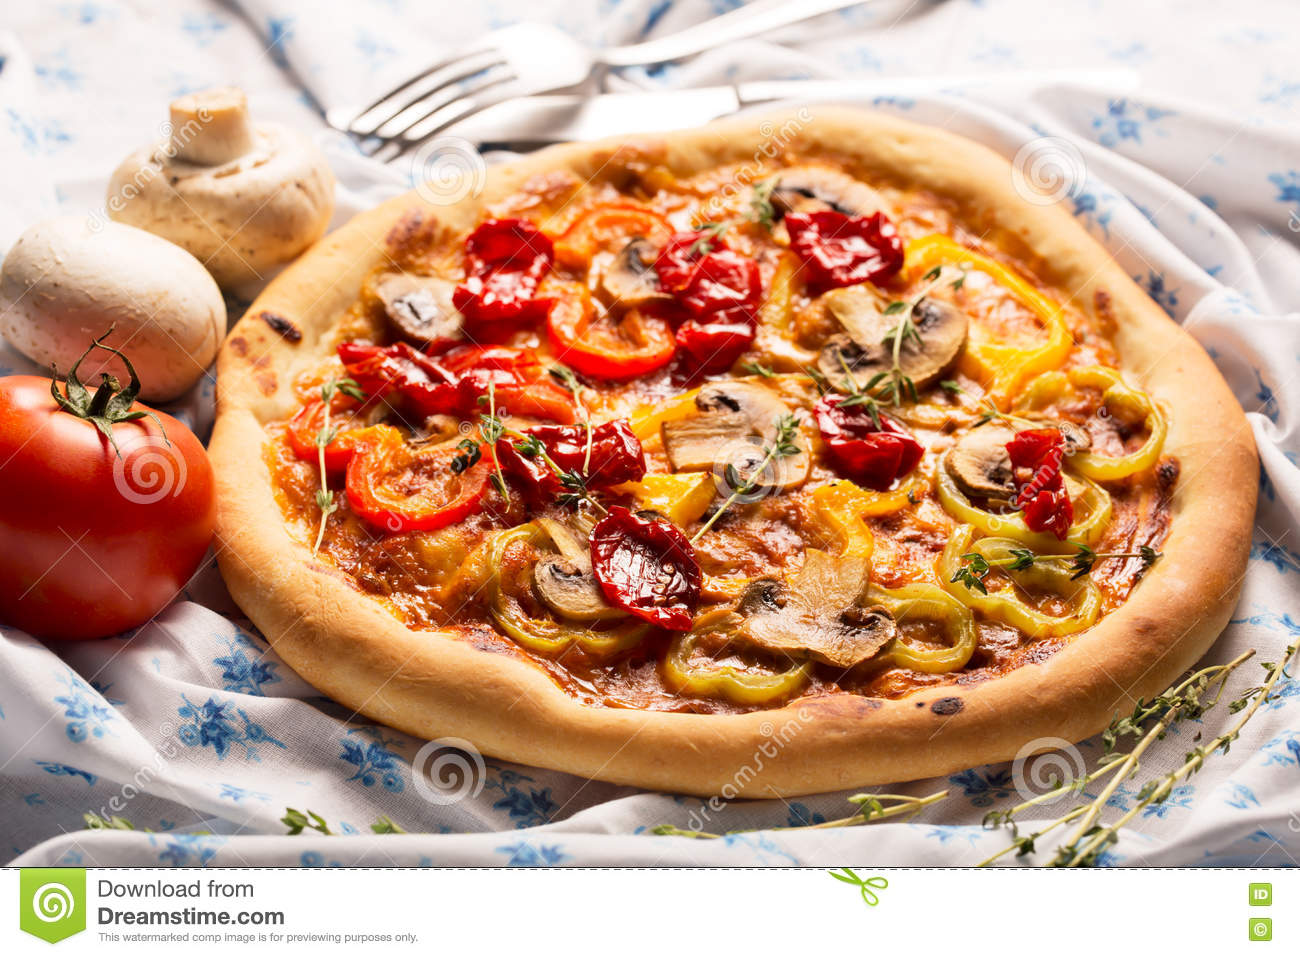 Vegan pizza with vegetables